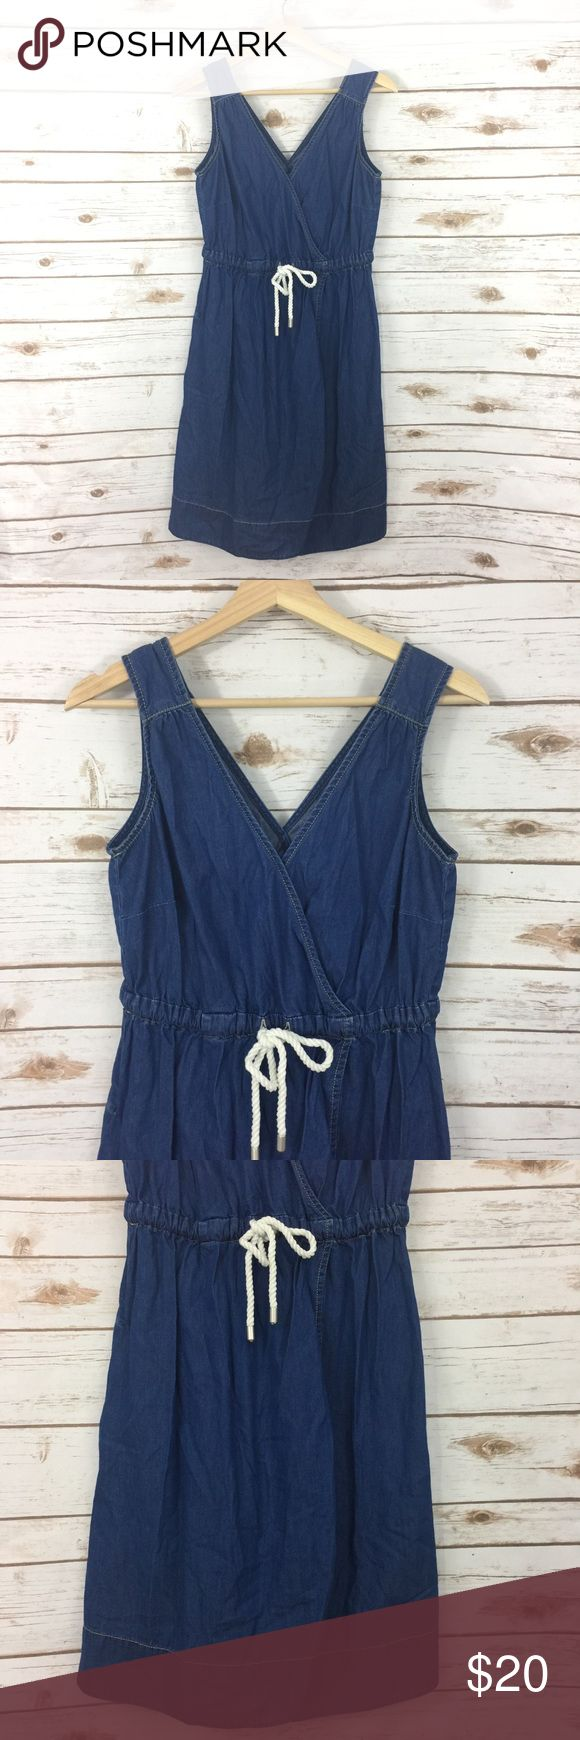 "[Tommy Hilfiger] Denim Sleeveless Dress Size Small Really cute Tommy Hilfiger dress, size small. It has a v-neckline and drawstring waist. I'm not sure of the material content. It's preowned and in good condition, see photos for details.  Armpit to armpit- 15""  Length- 37""   :::PC271SB2 Tommy Hilfiger Dresses Mini"